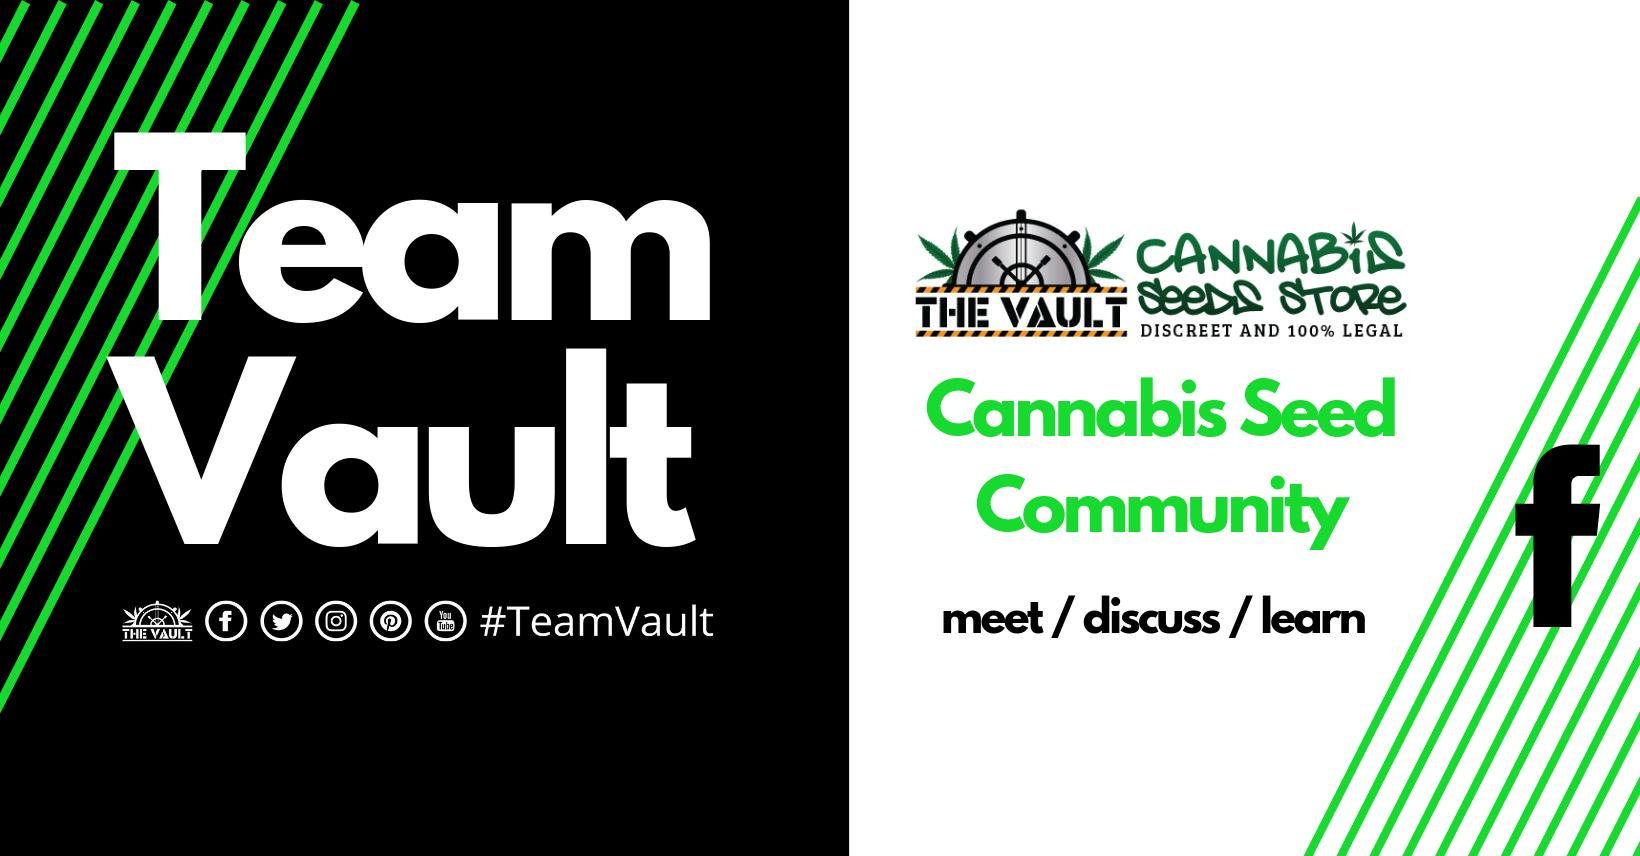 The Vault Cannabis Seed Community